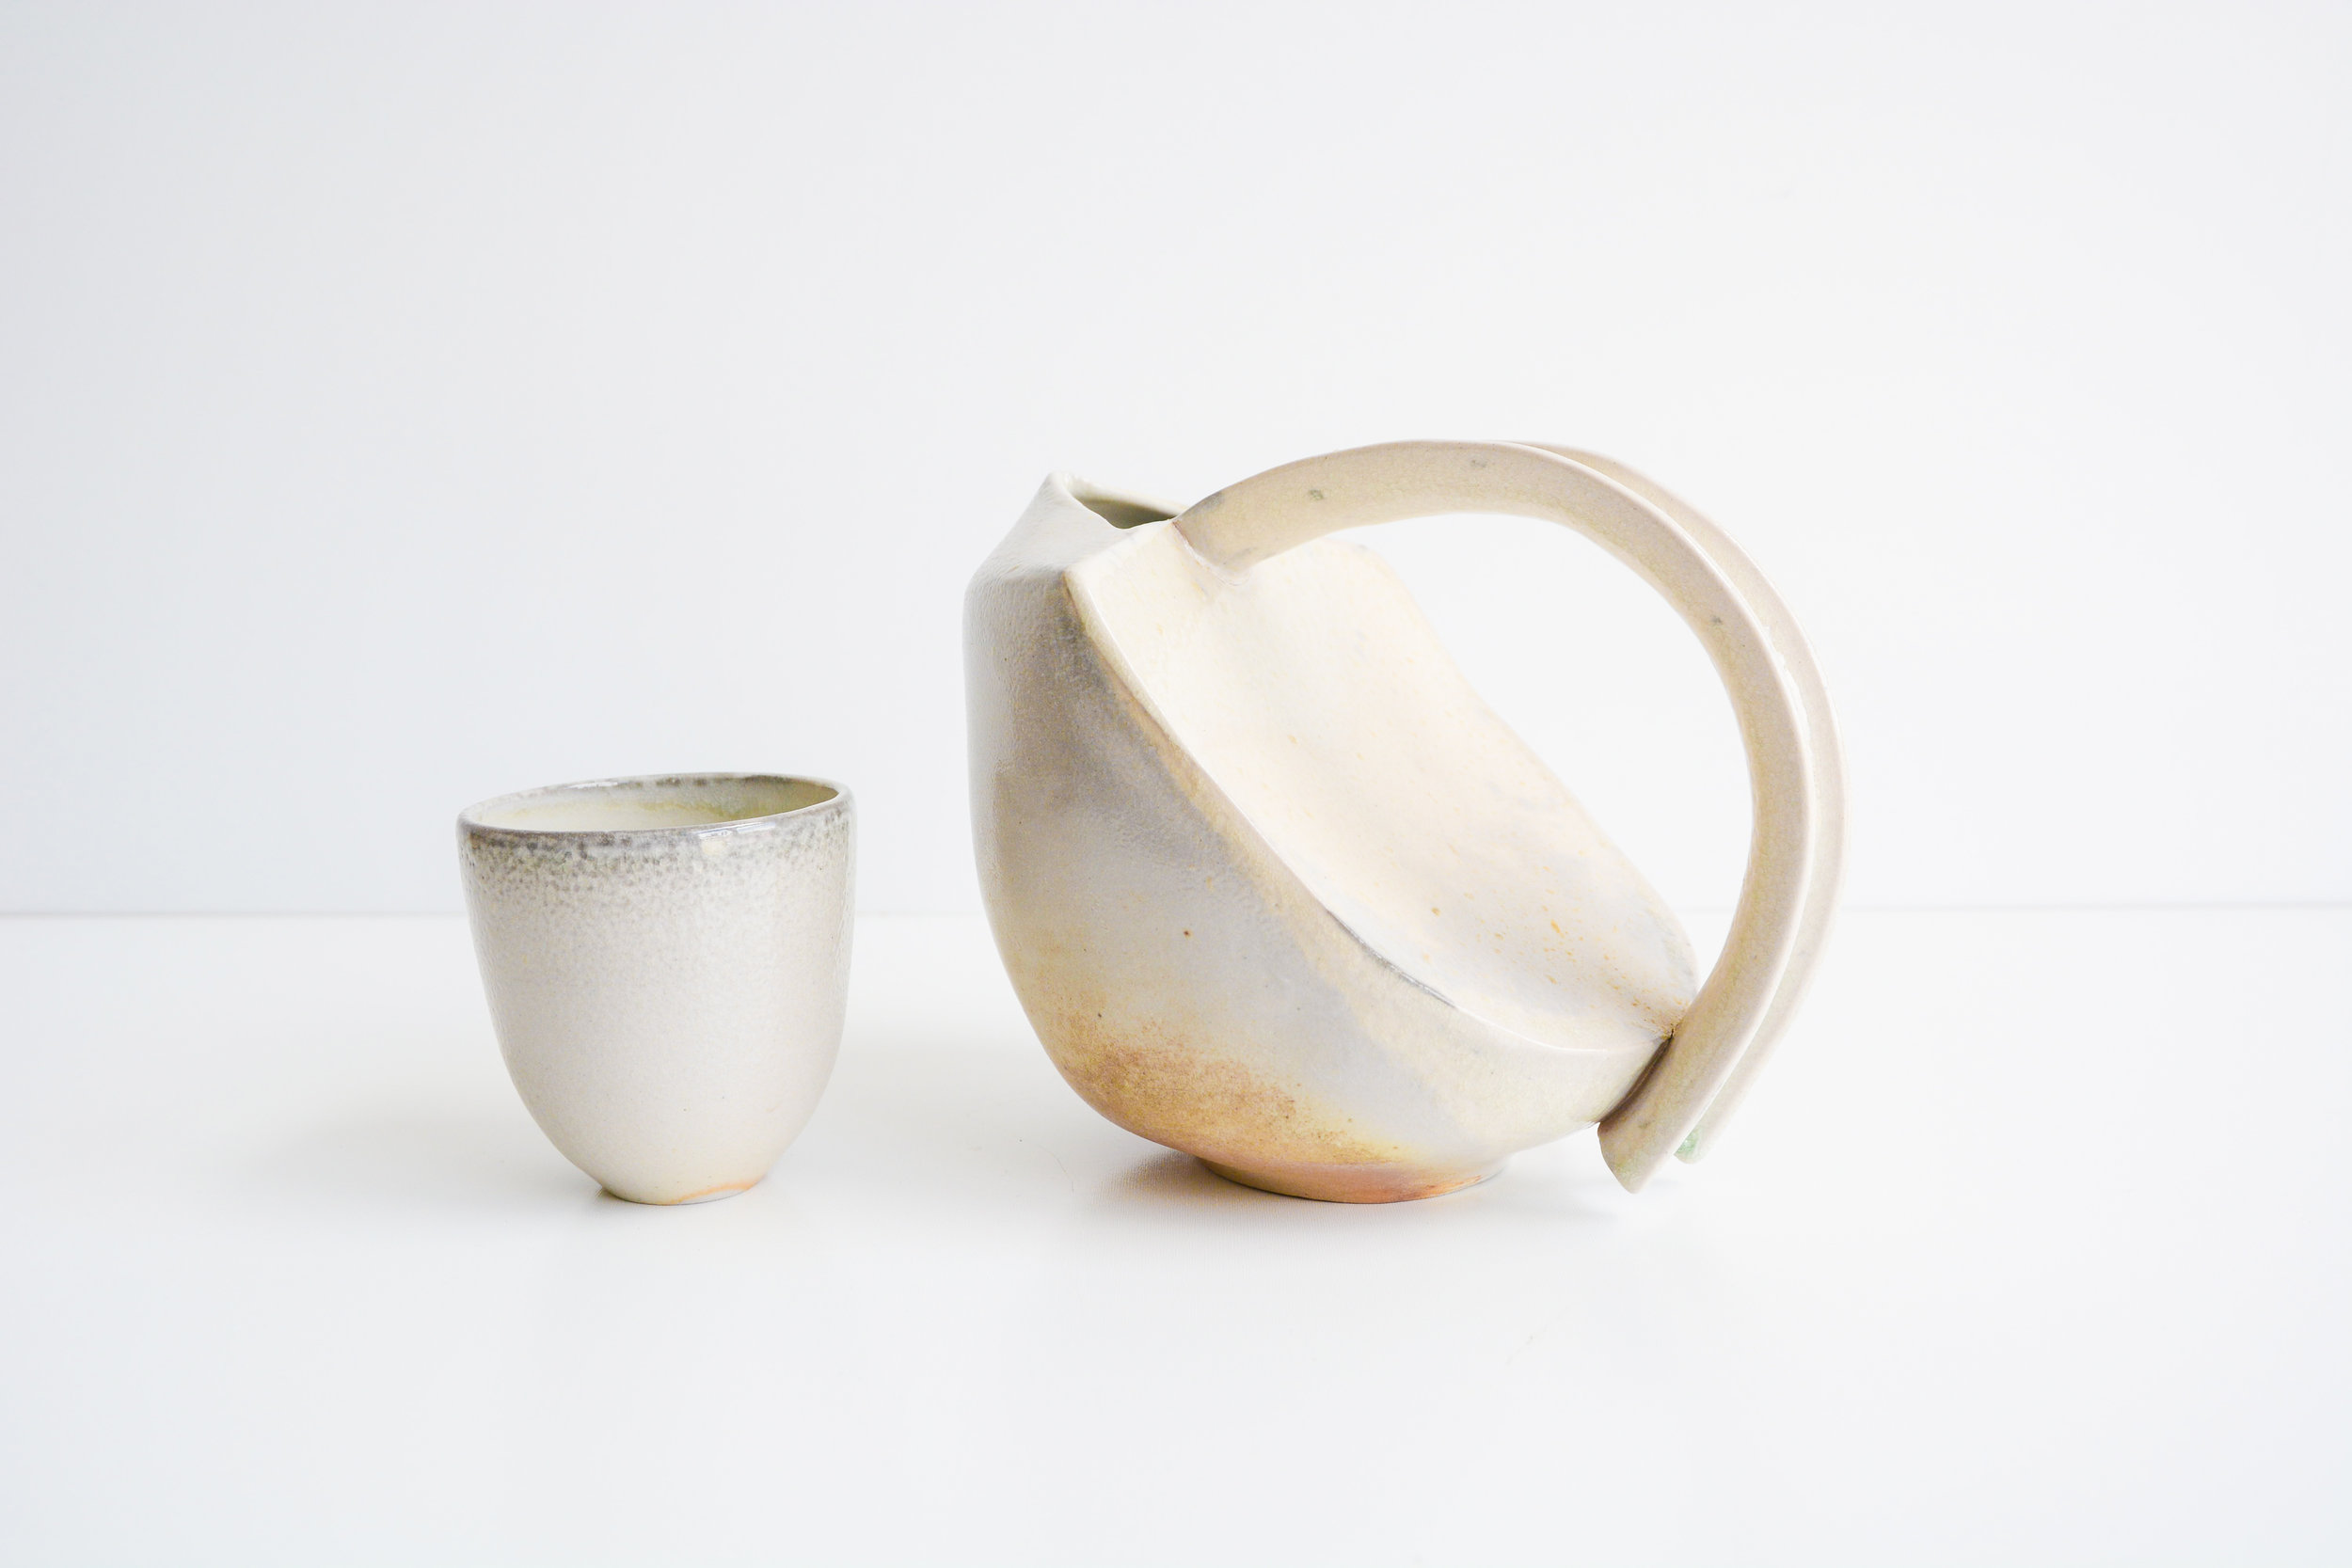 koikceramics_july2018 (5 of 12).jpg